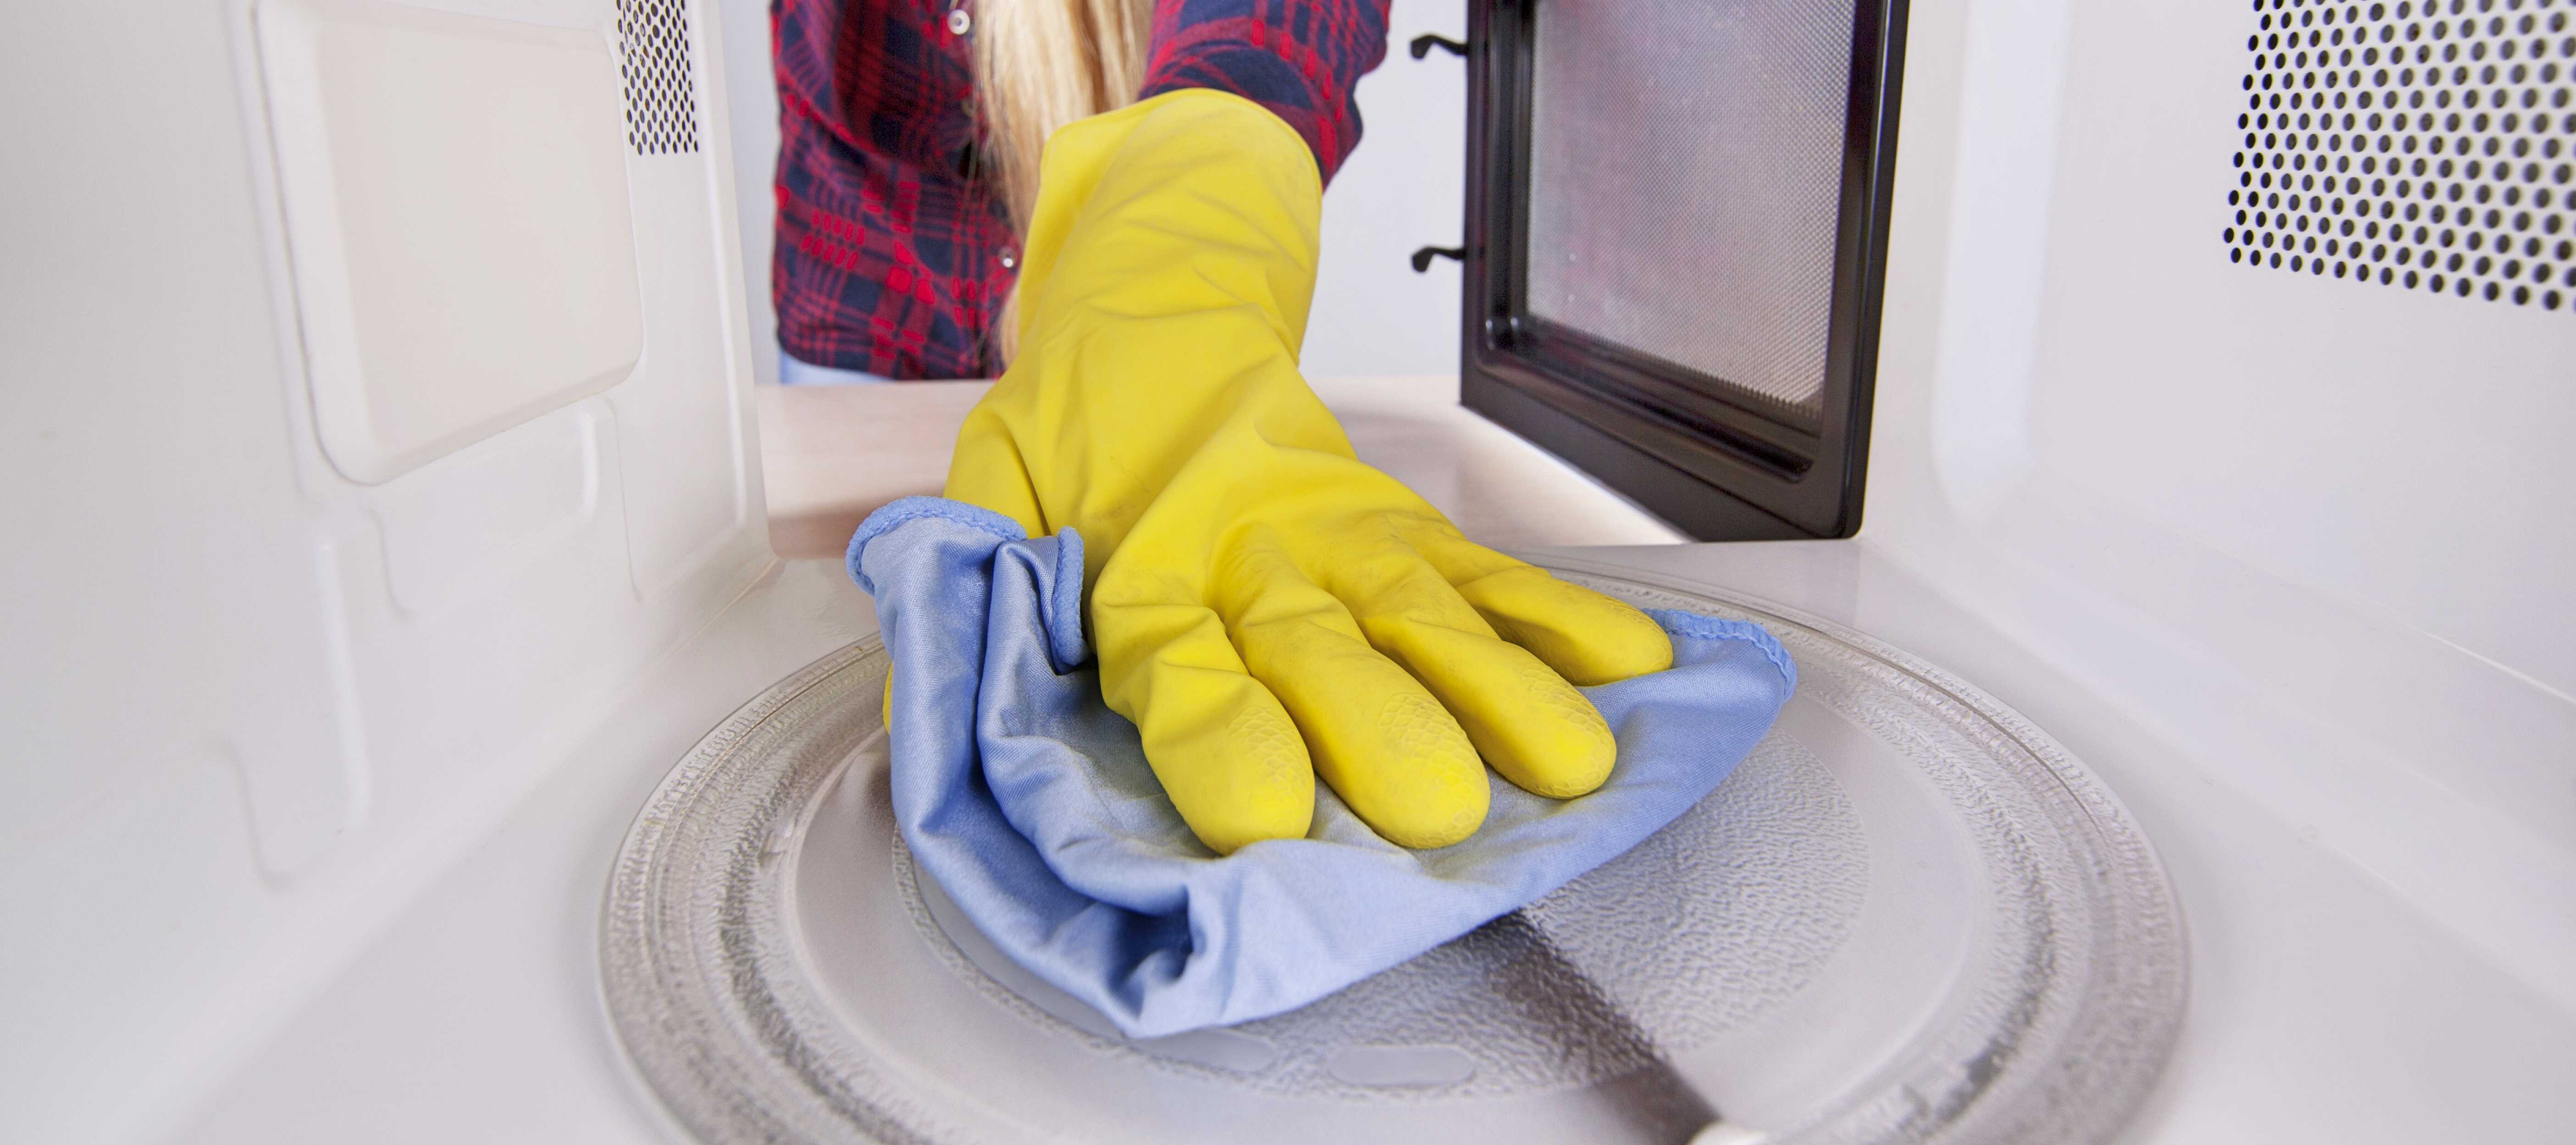 Cleaning a Microwave - Professional Cleaning Services Springfield MO